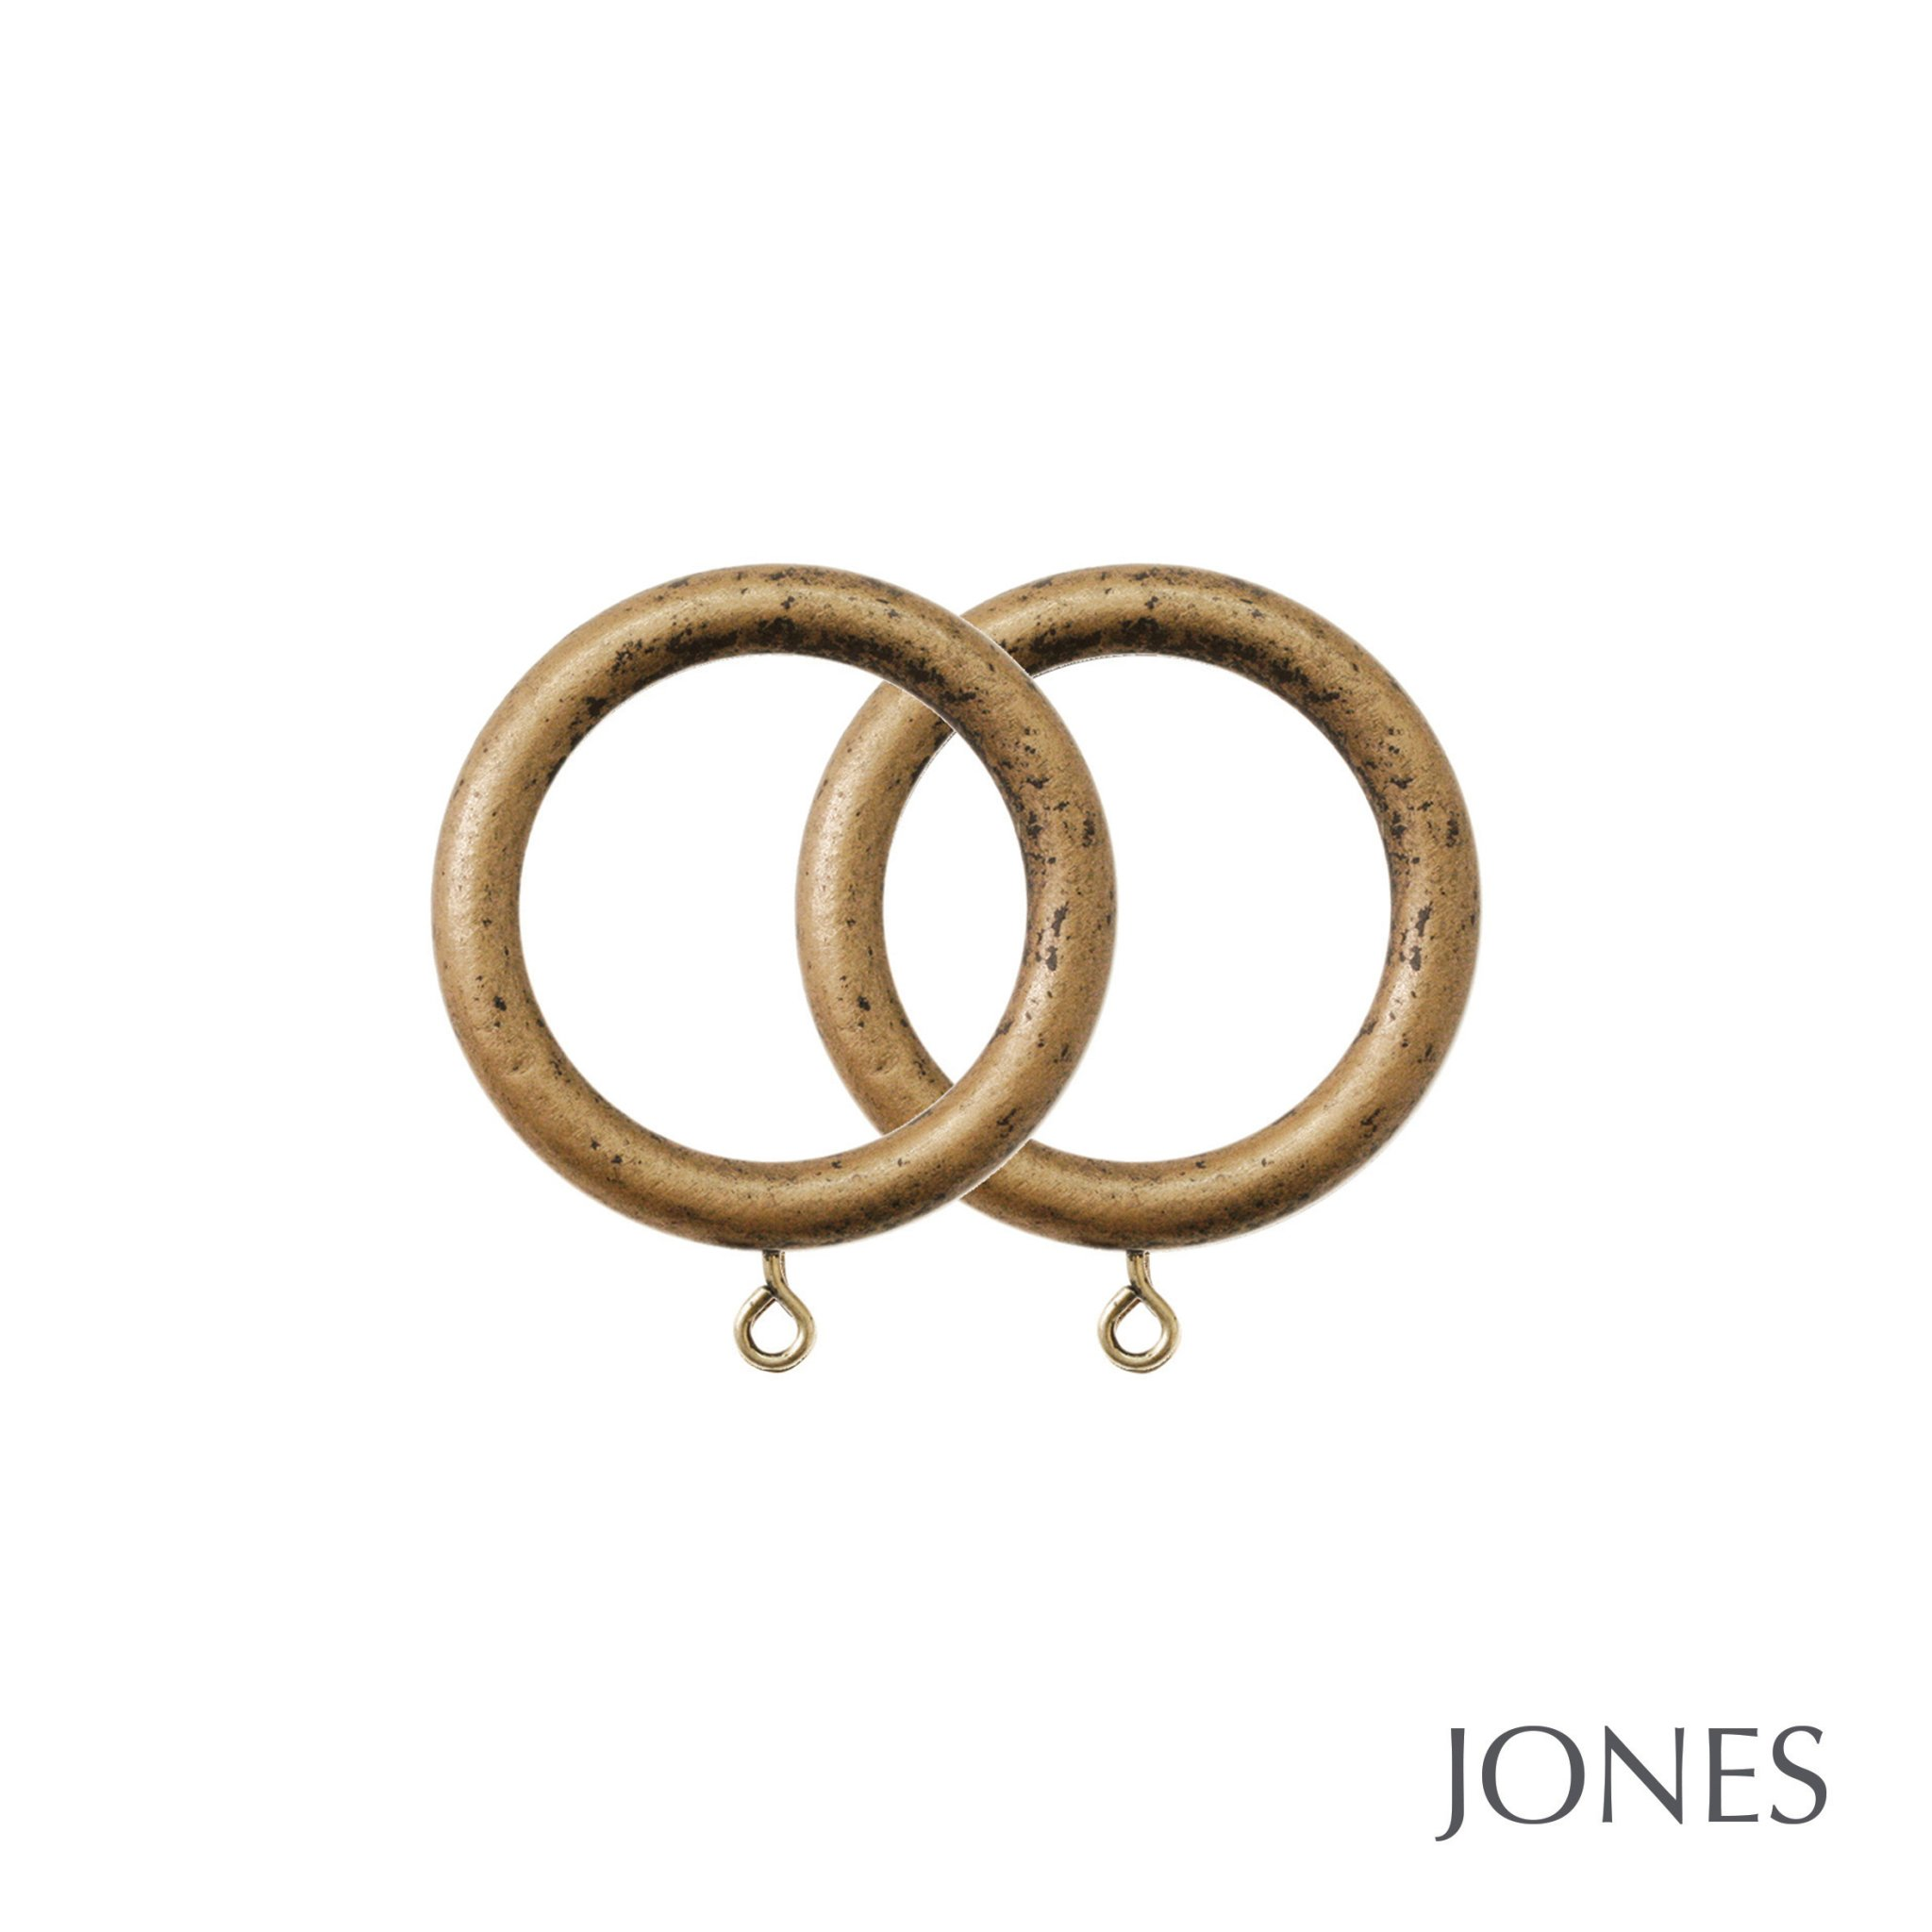 Jones Grande Handcrafted 63mm Curtain Rings